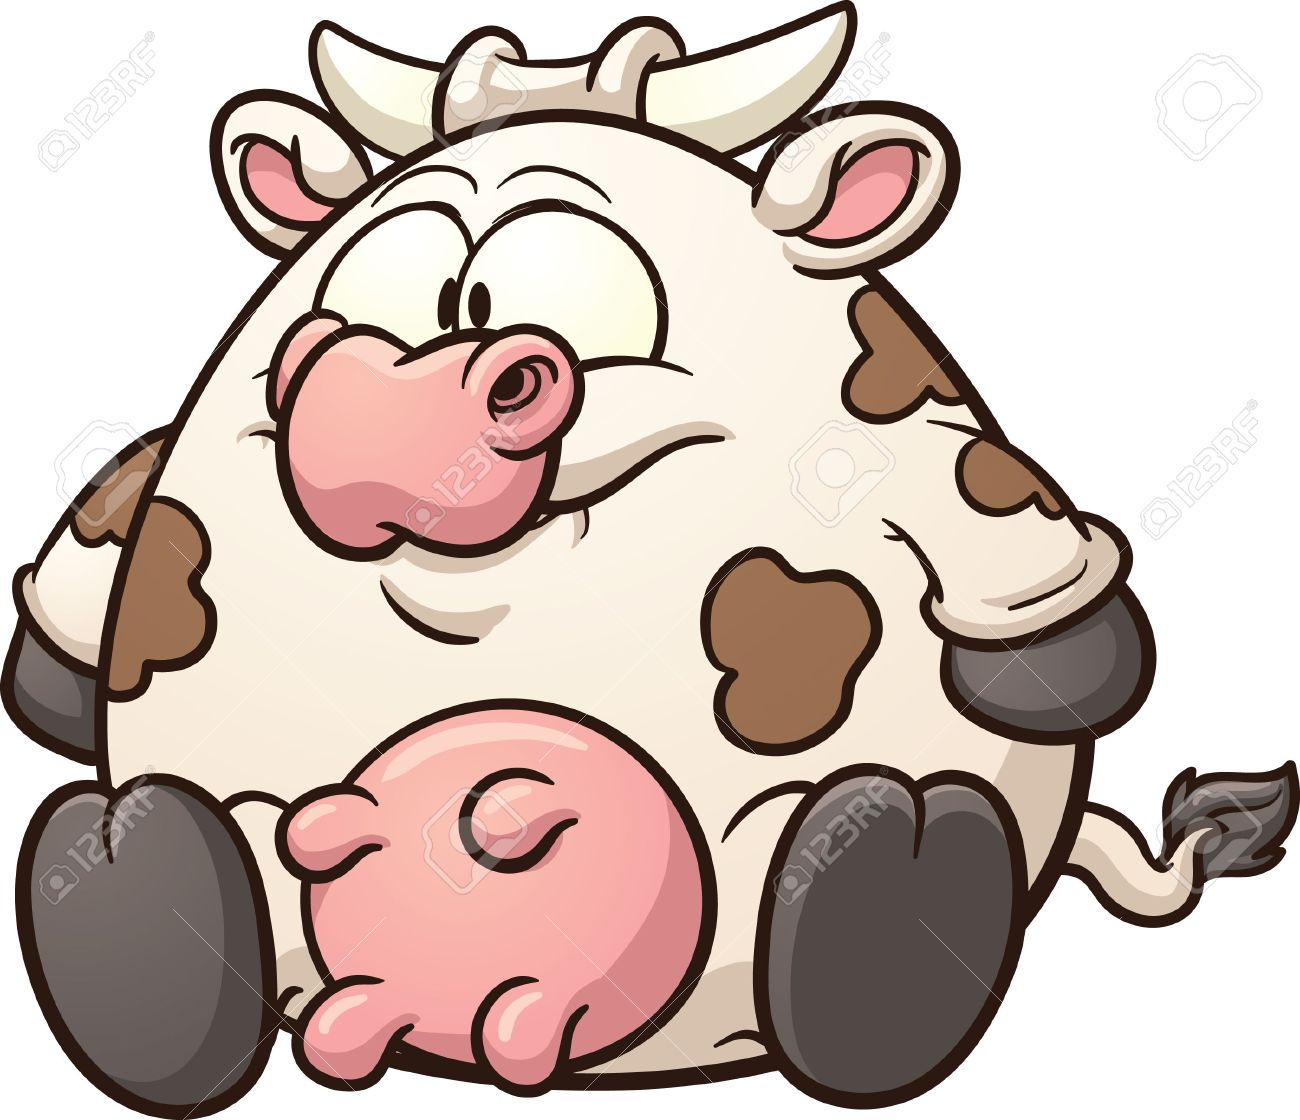 hight resolution of fat cow clip art stock vector 23830106